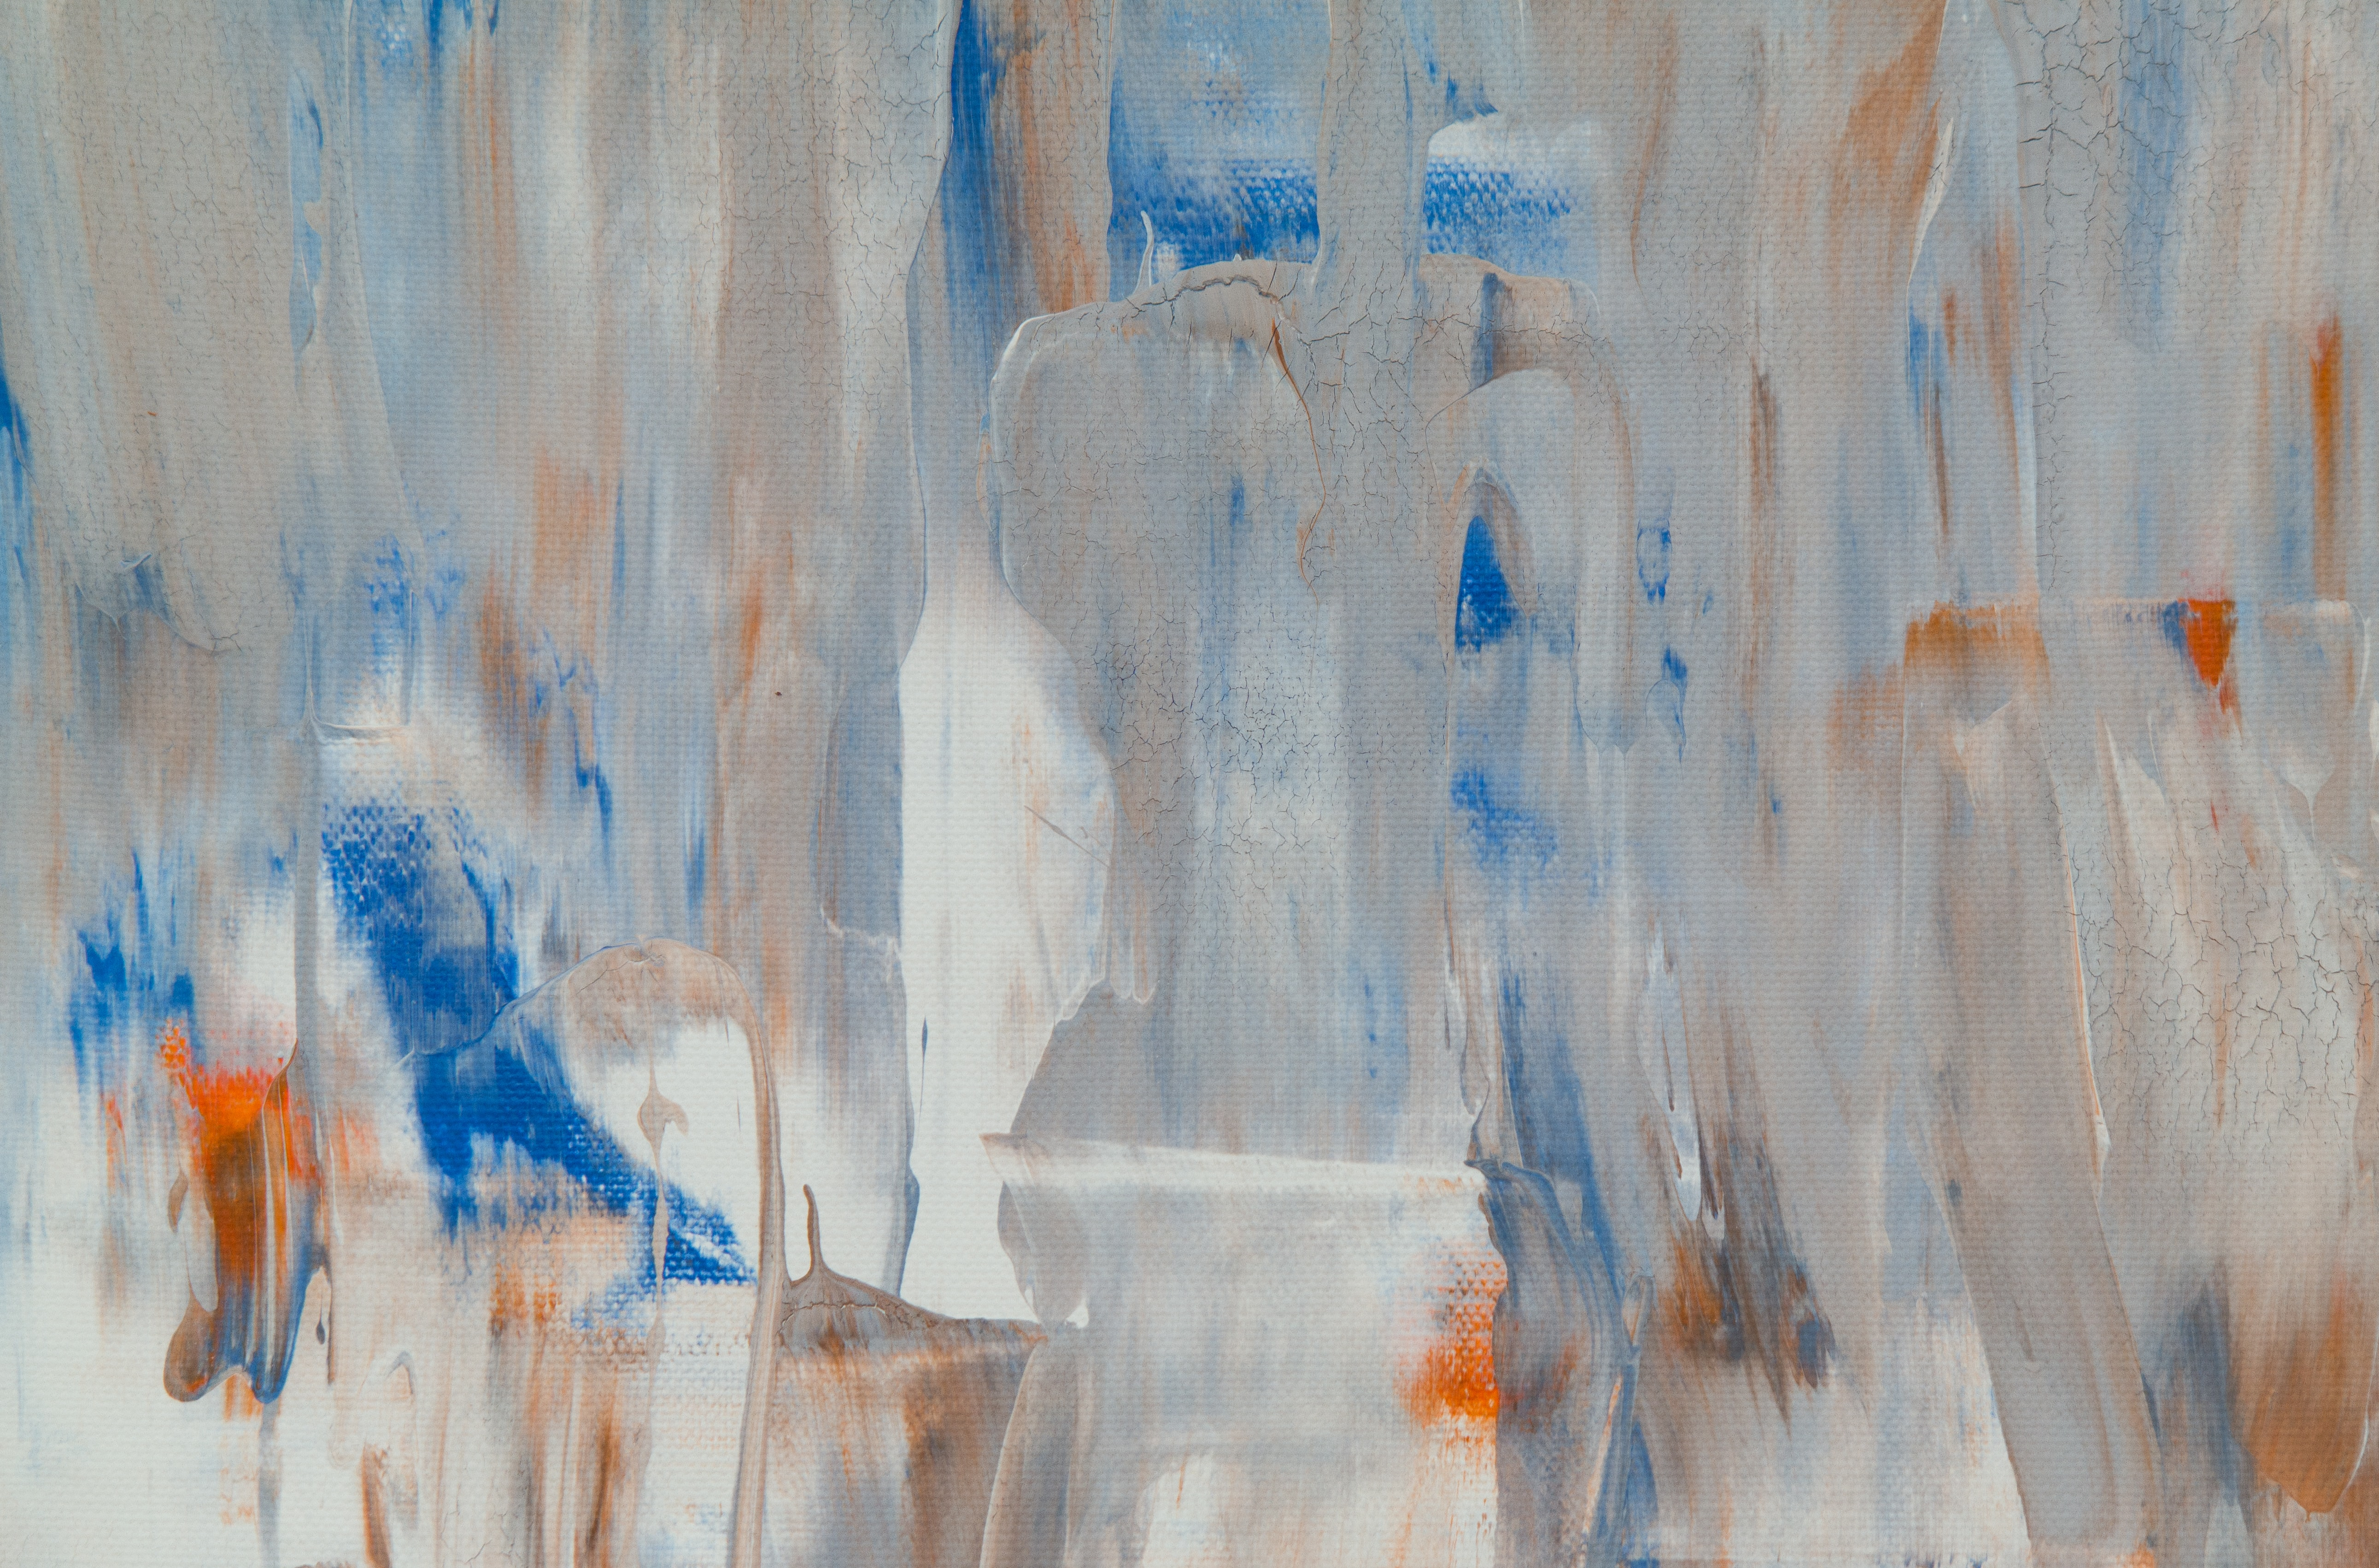 white, gray, blue, and orange abstract painting